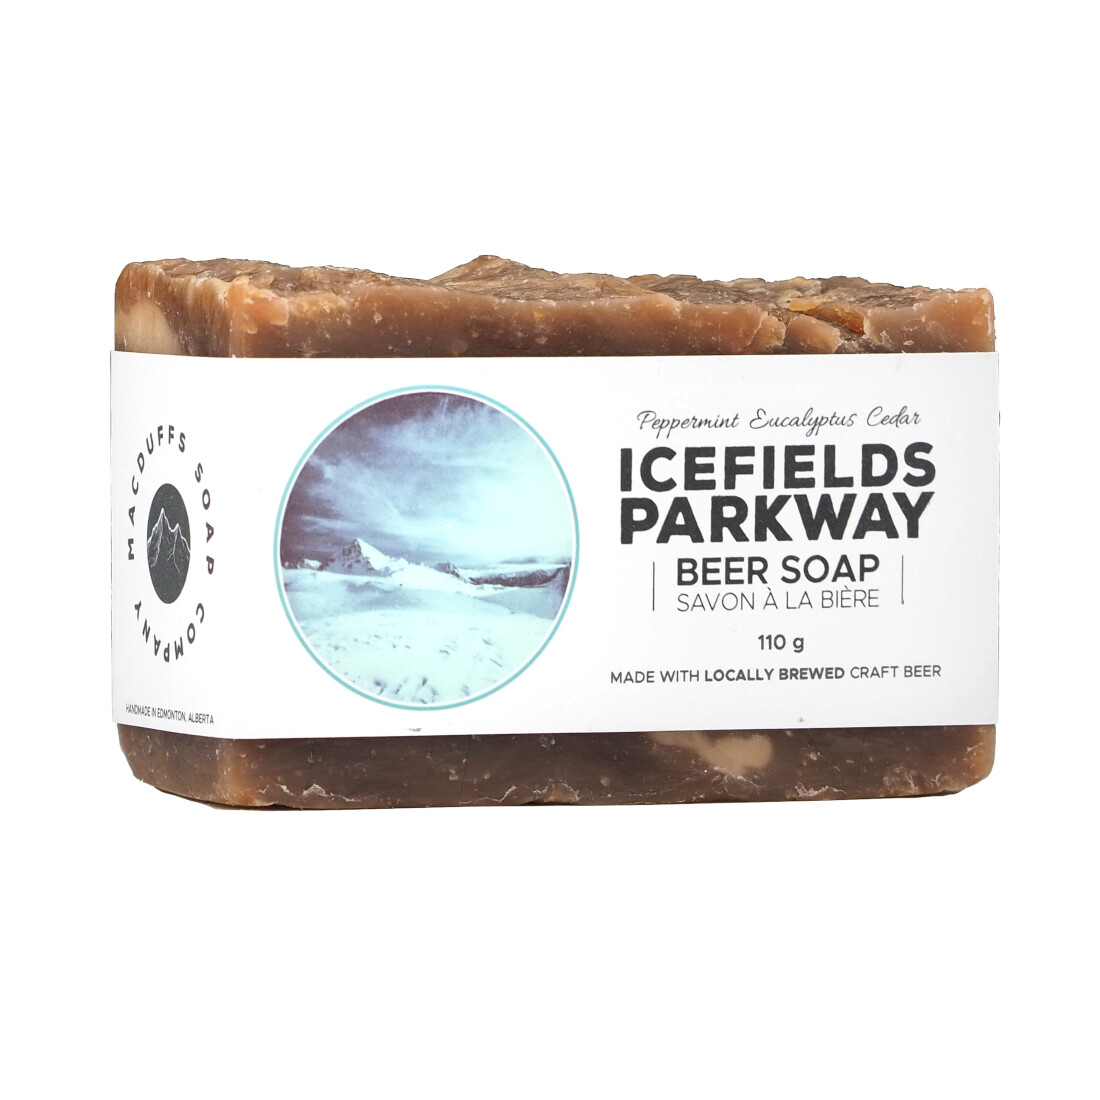 Icefields Parkway Beer Soap